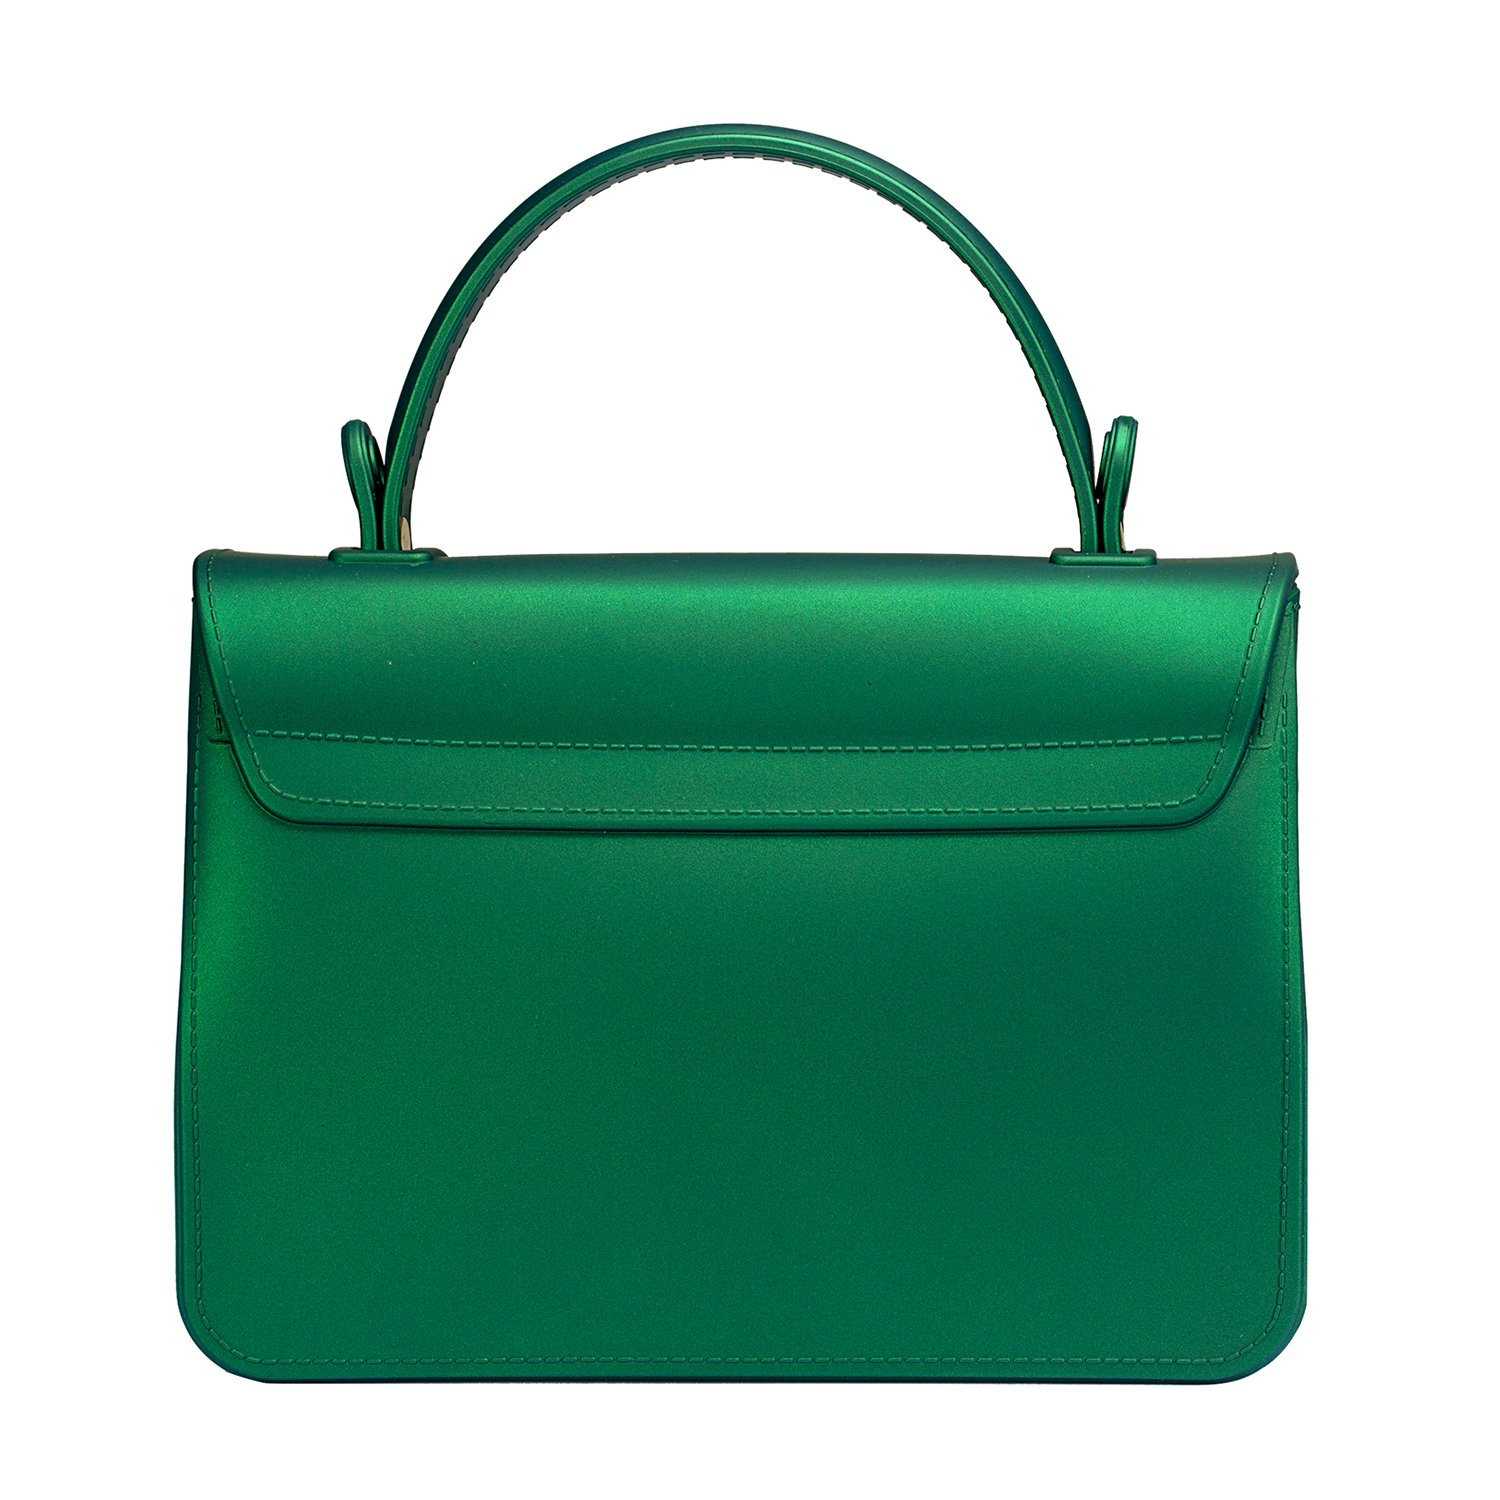 Small Top Handle Handbags Jelly Satchel Bags for Women Tote Purse - Green by Chrysansmile (Image #3)